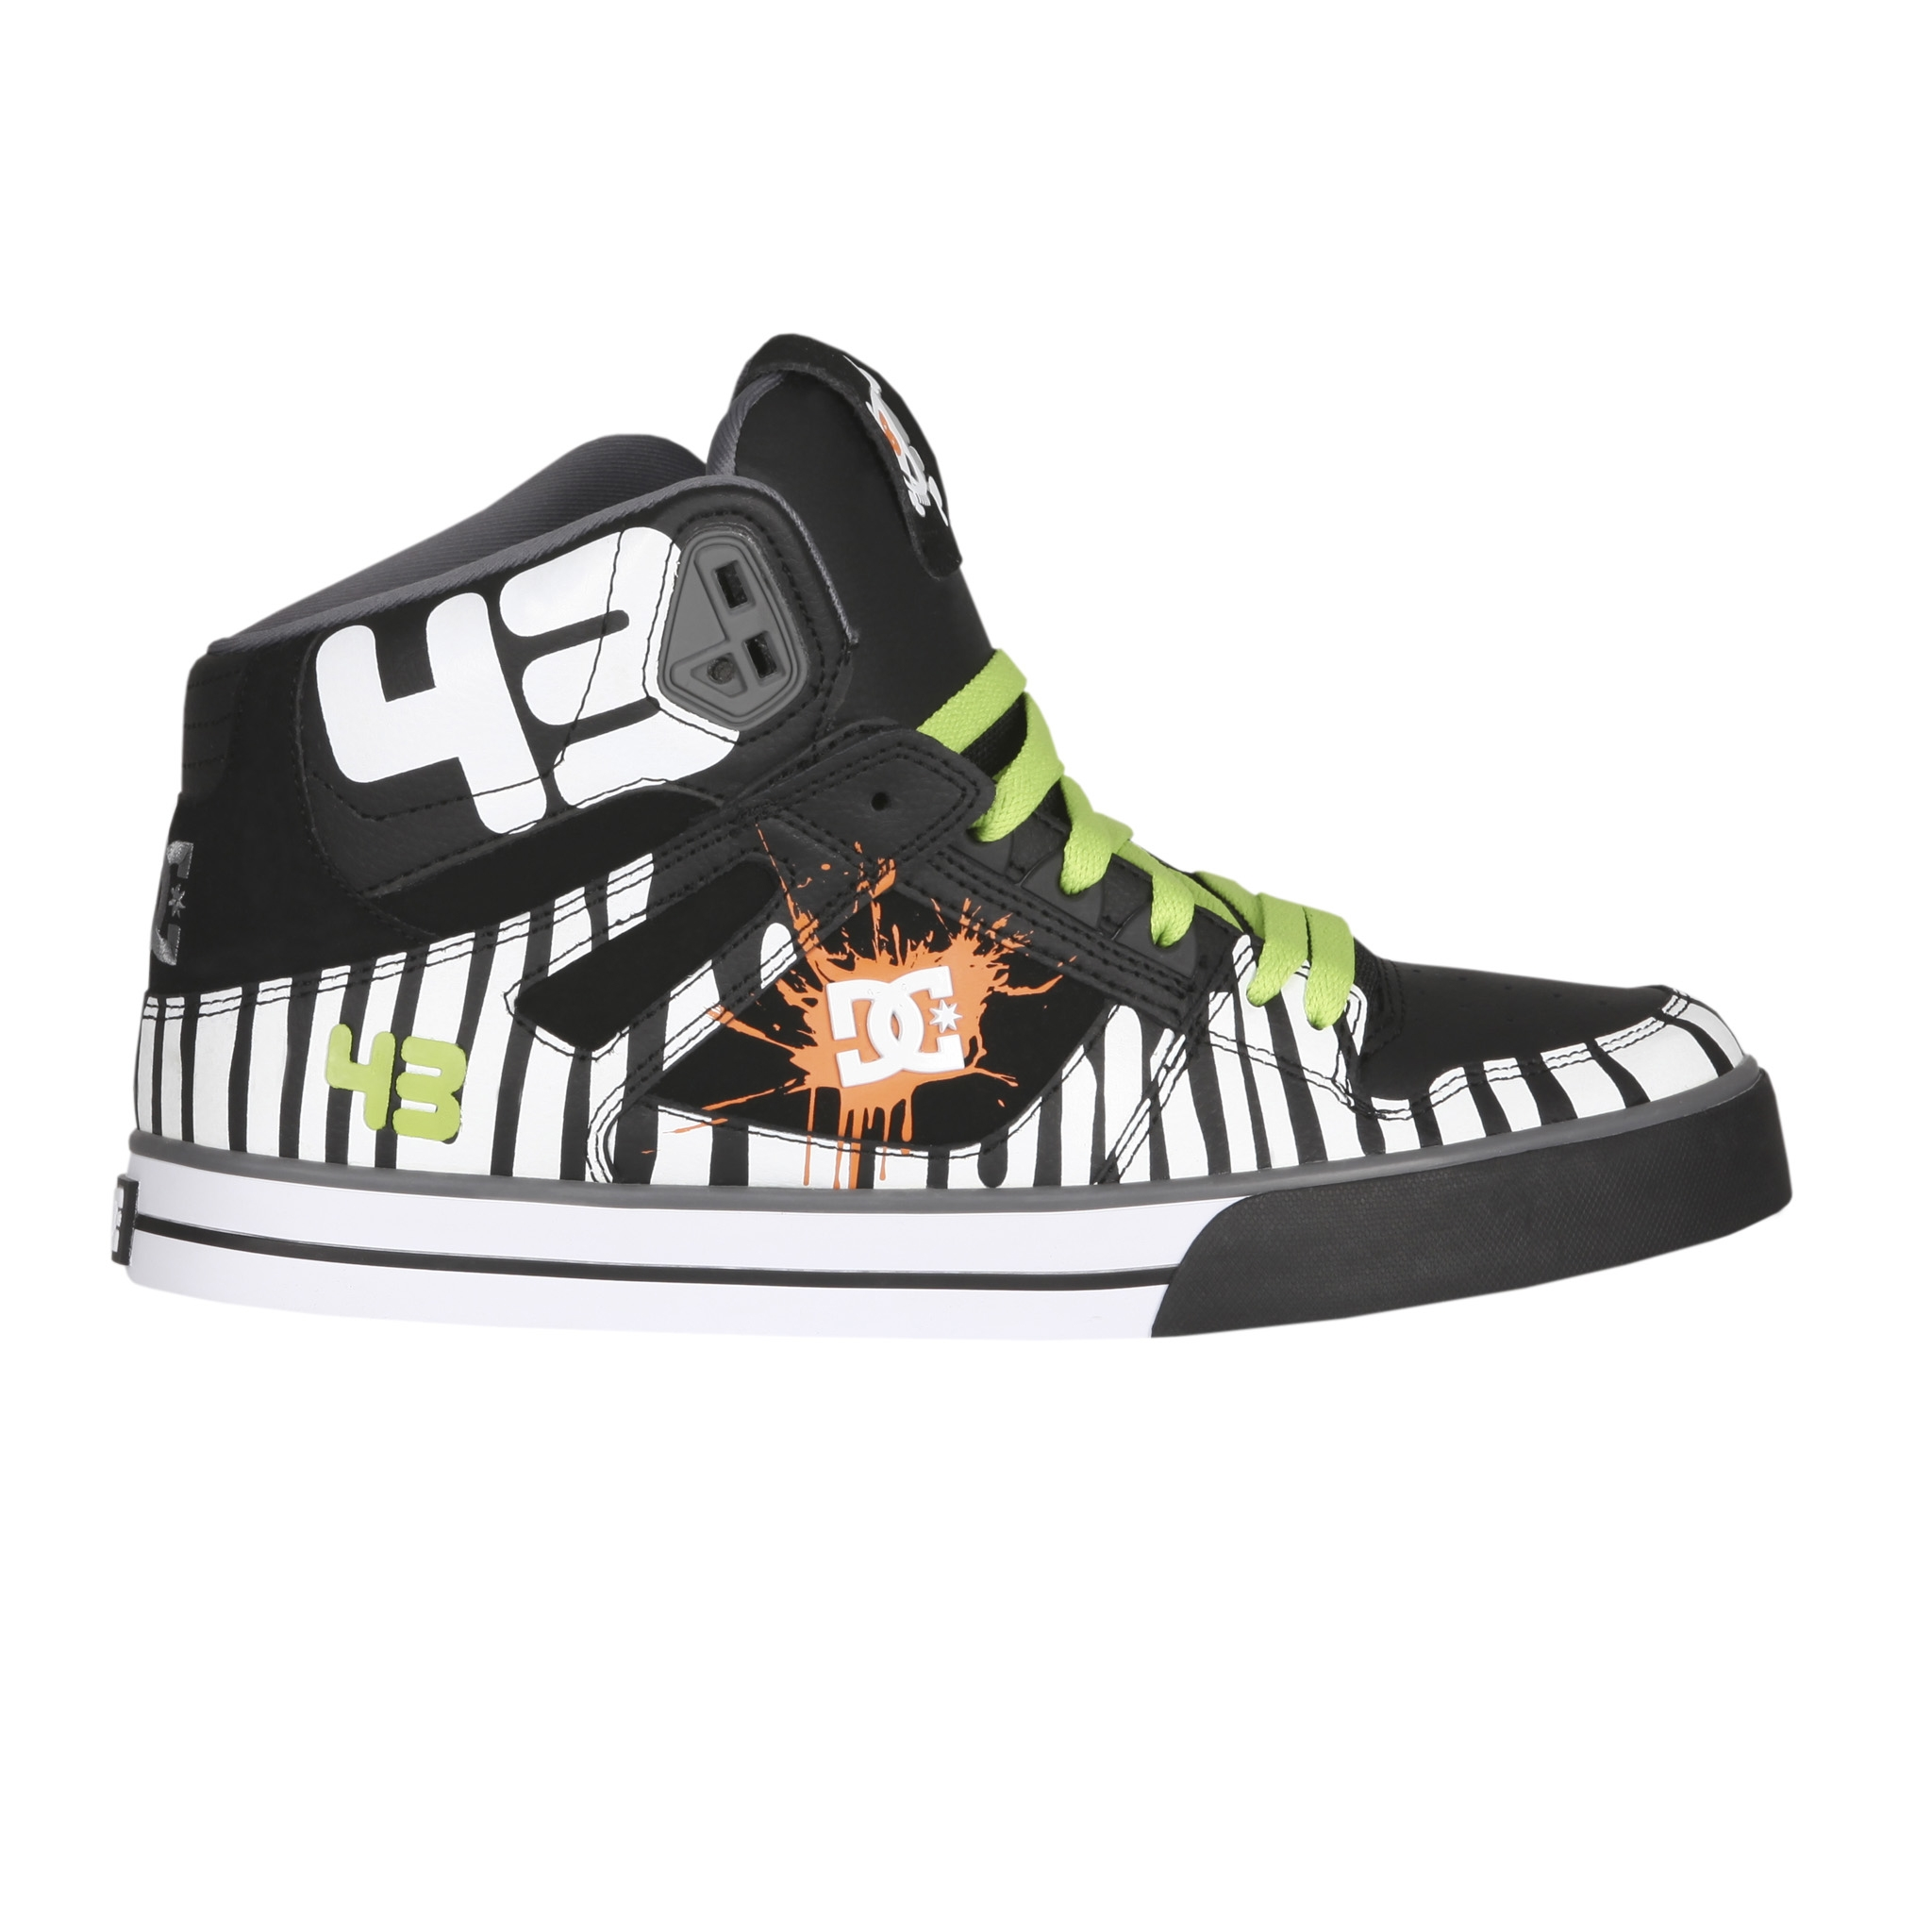 71331 DC SHOES Chaussures BLOCK SPARTAN HI WC Noir Soft Lime Citrus2 So, like I said, you are getting on a new band for not a lot of money  but ...